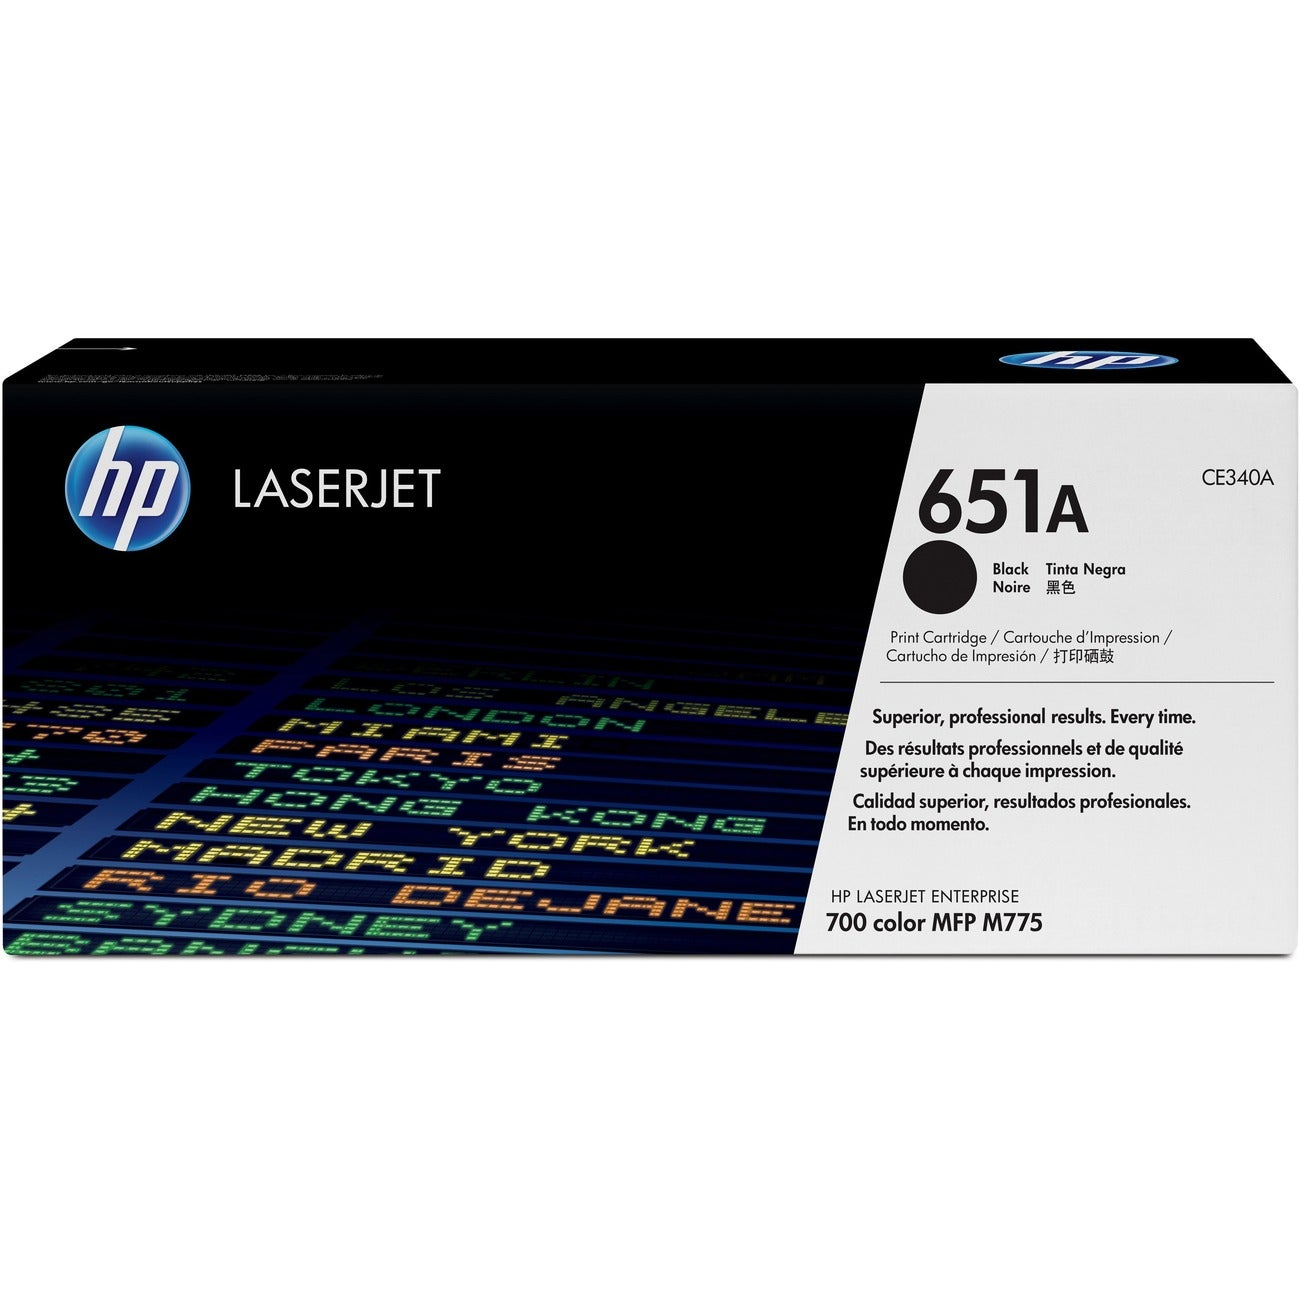 HP 651A Toner Cartridge - Black